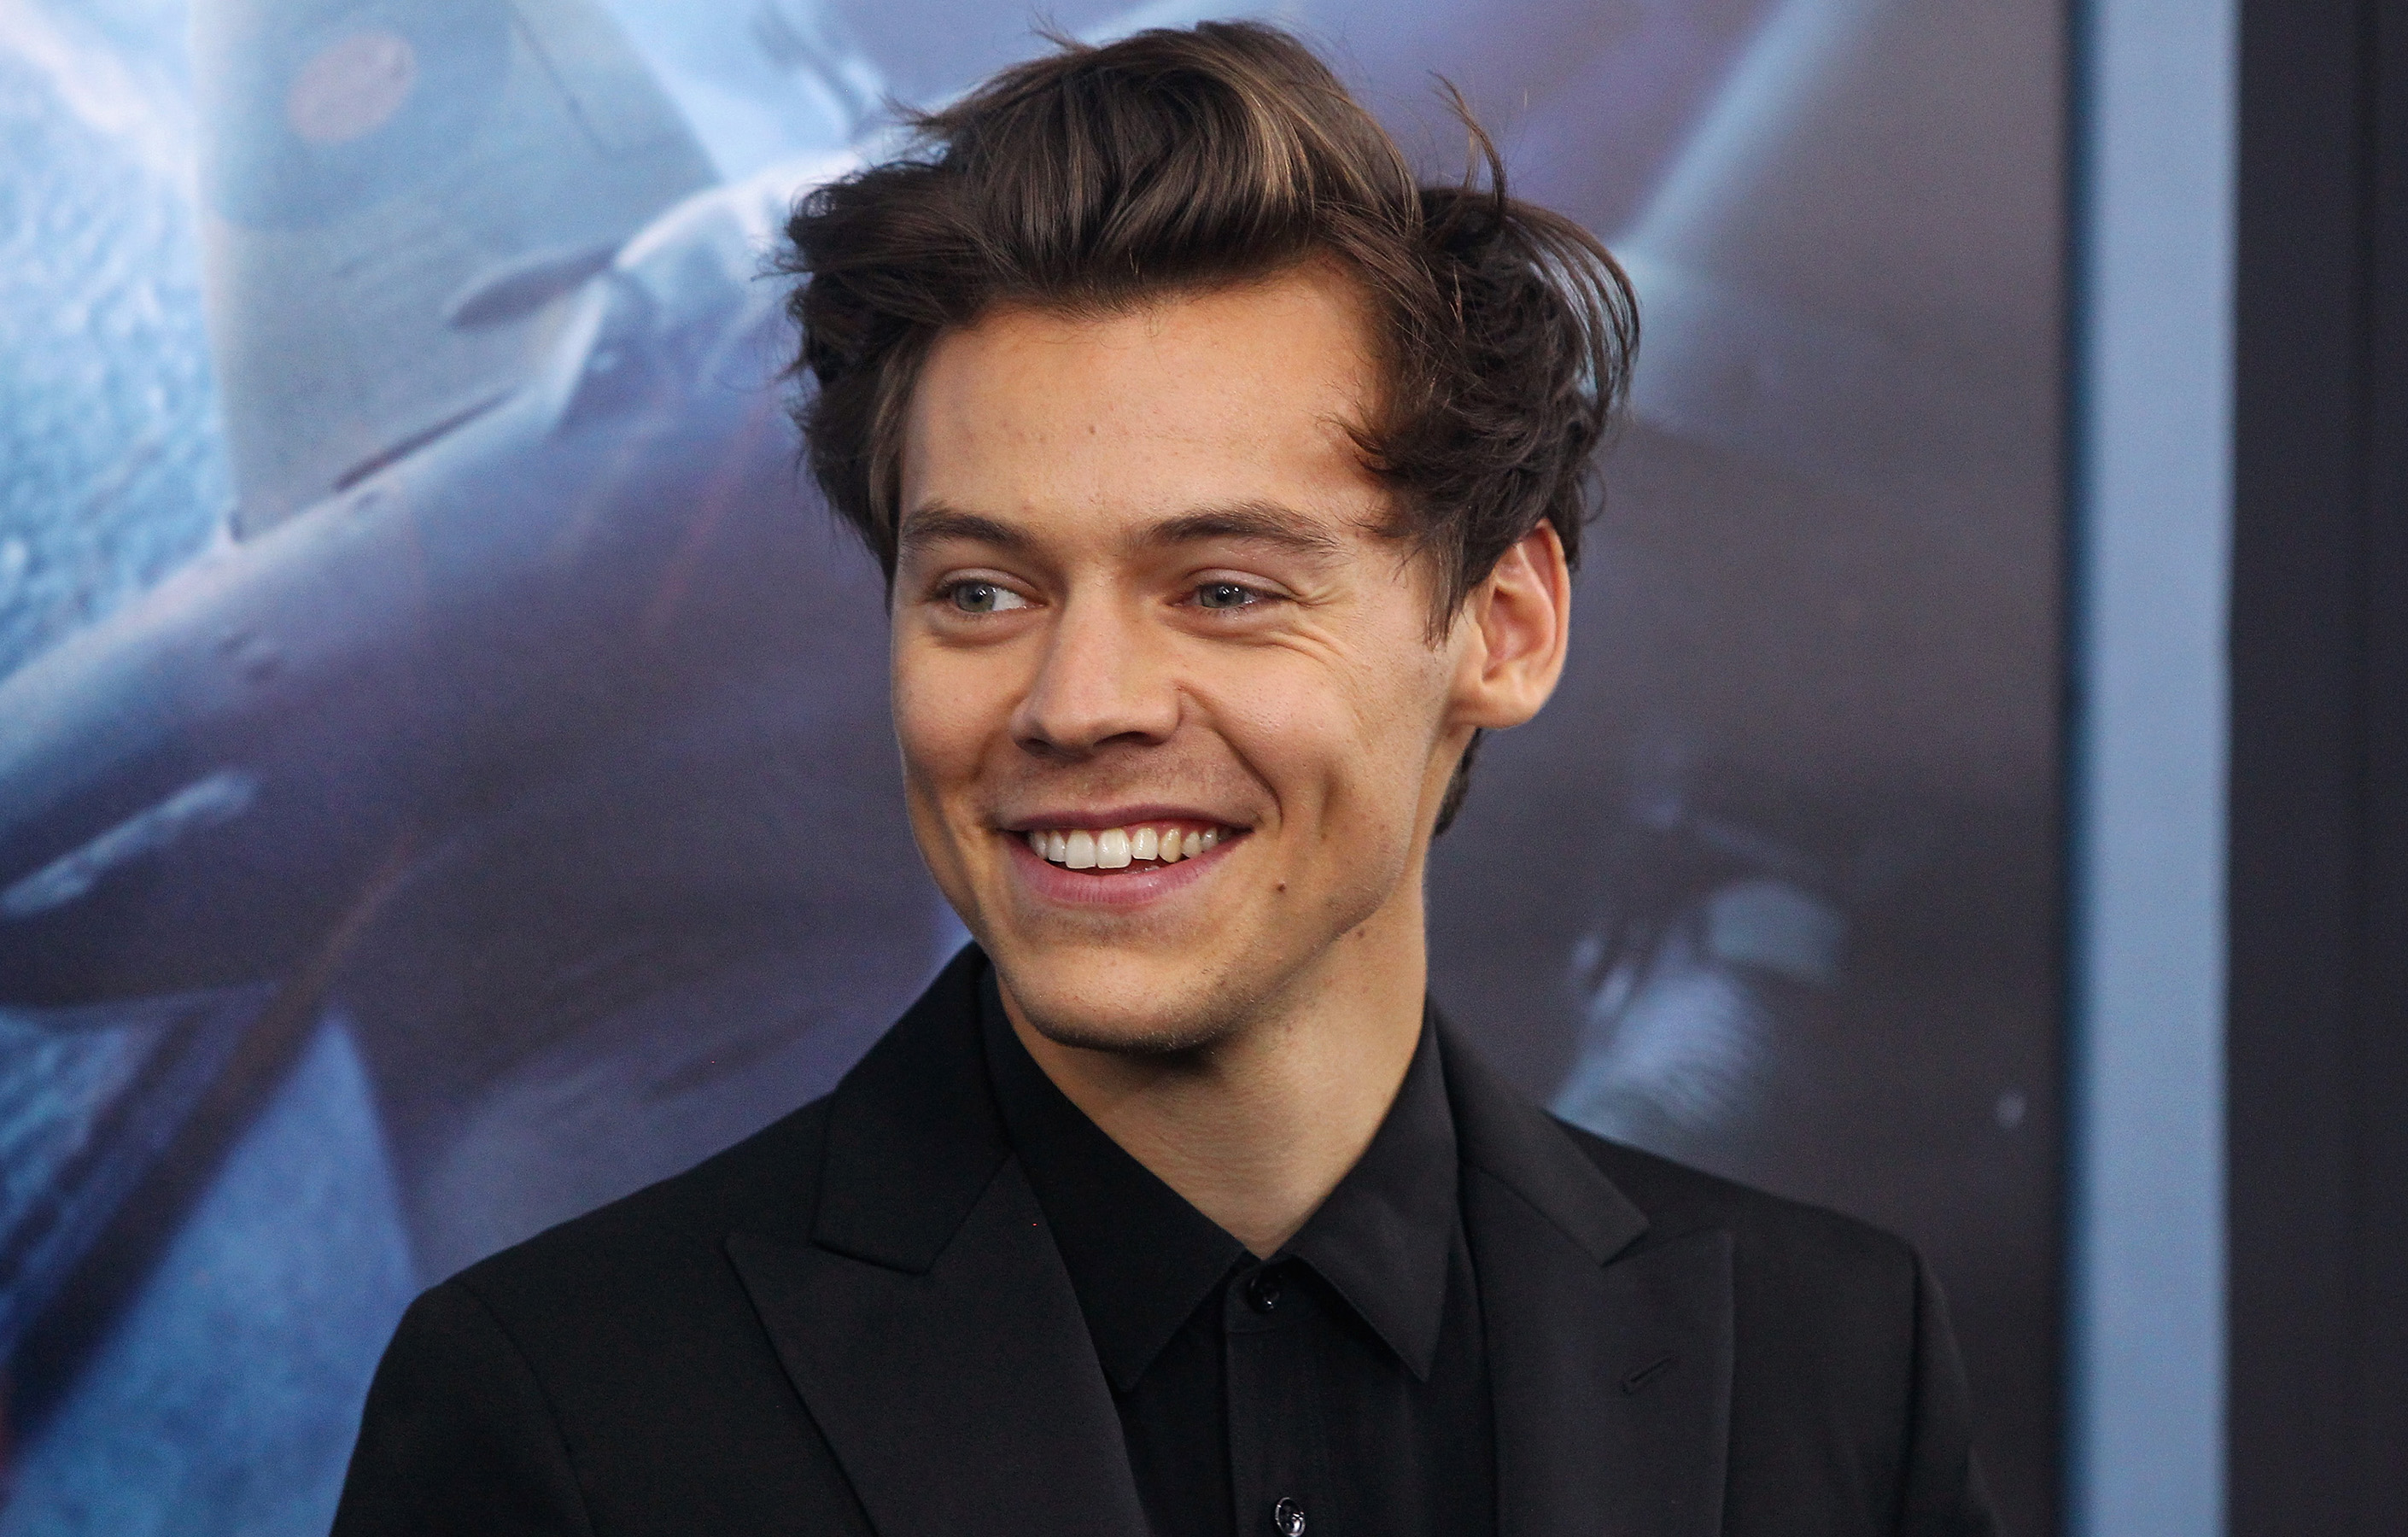 who is harry styles dating now june 2017 Find the latest about harry styles news, plus helpful articles, tips and tricks, and guides at glamourcom.